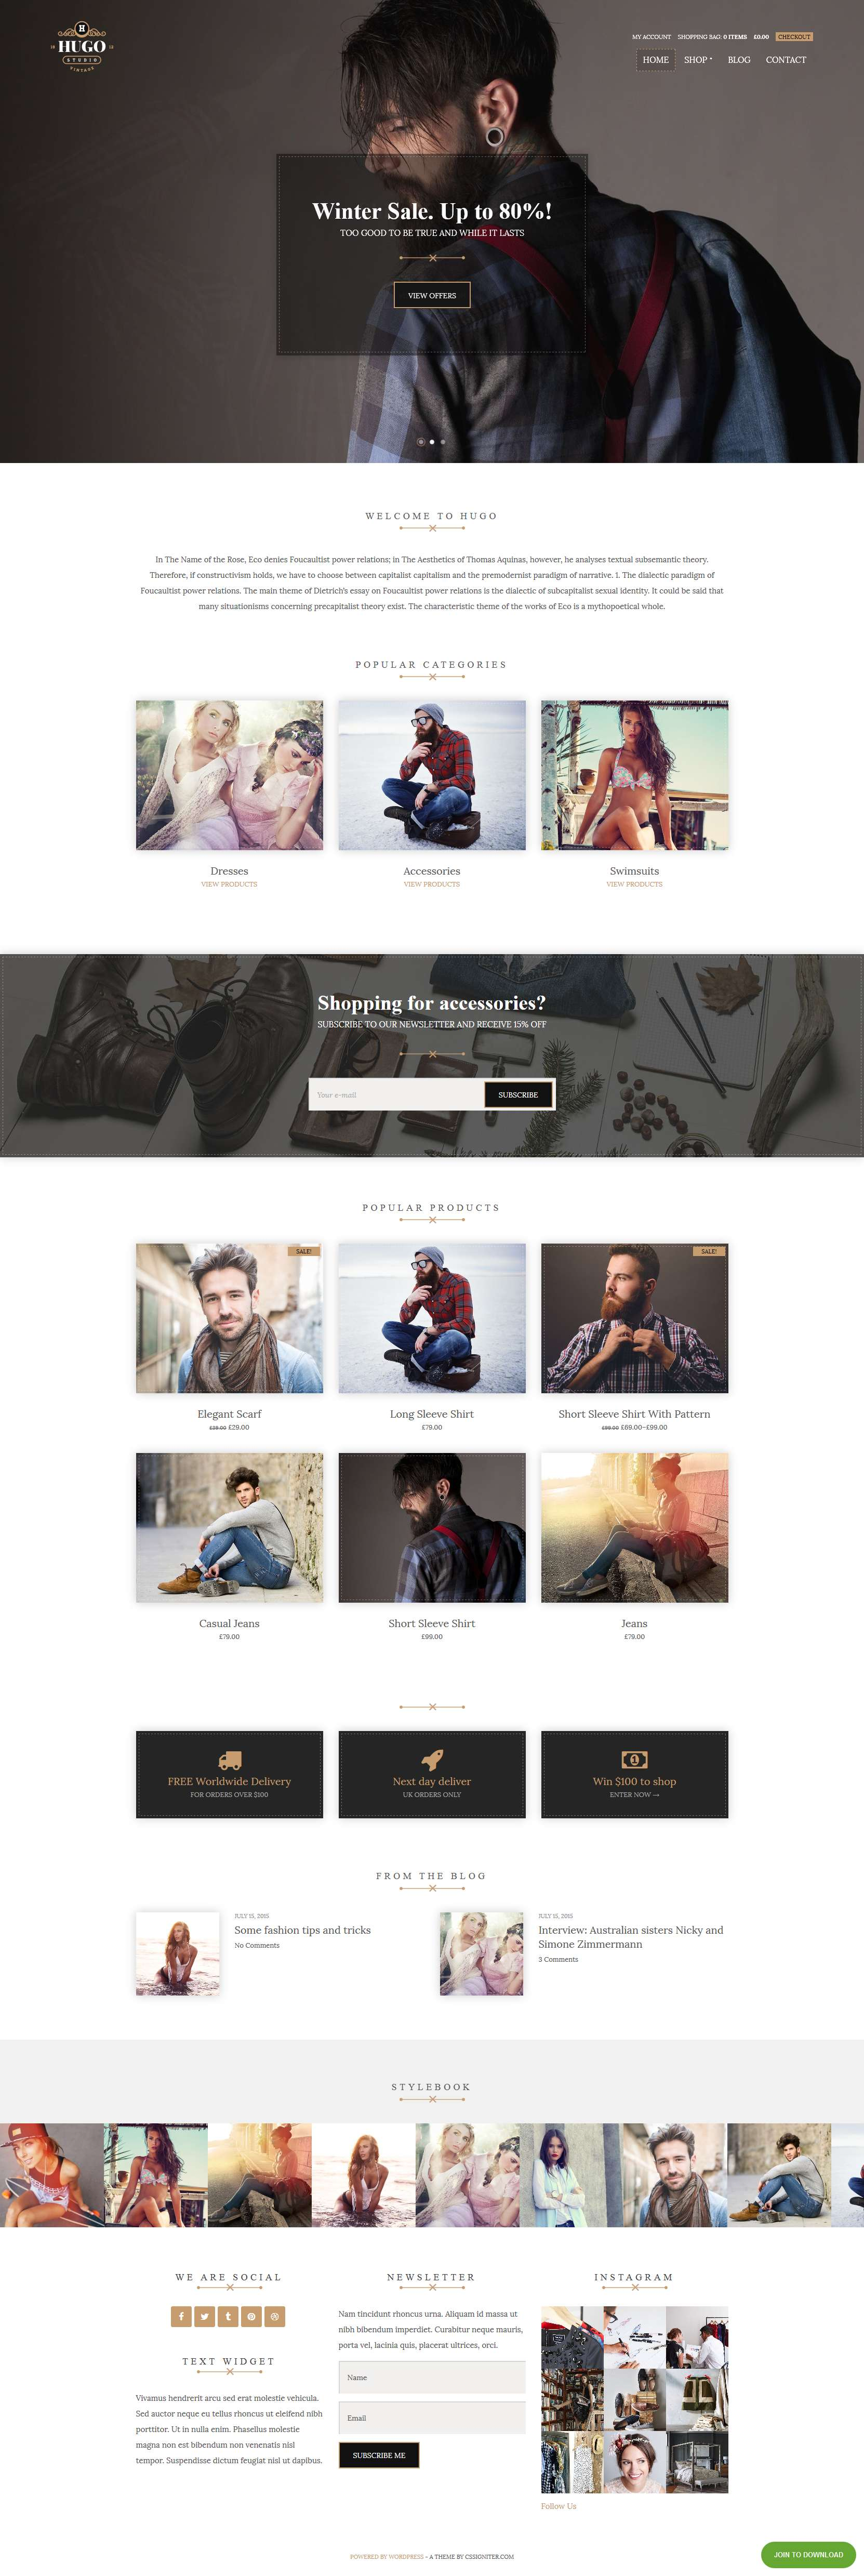 Hugo - WooCommerce WordPress Theme